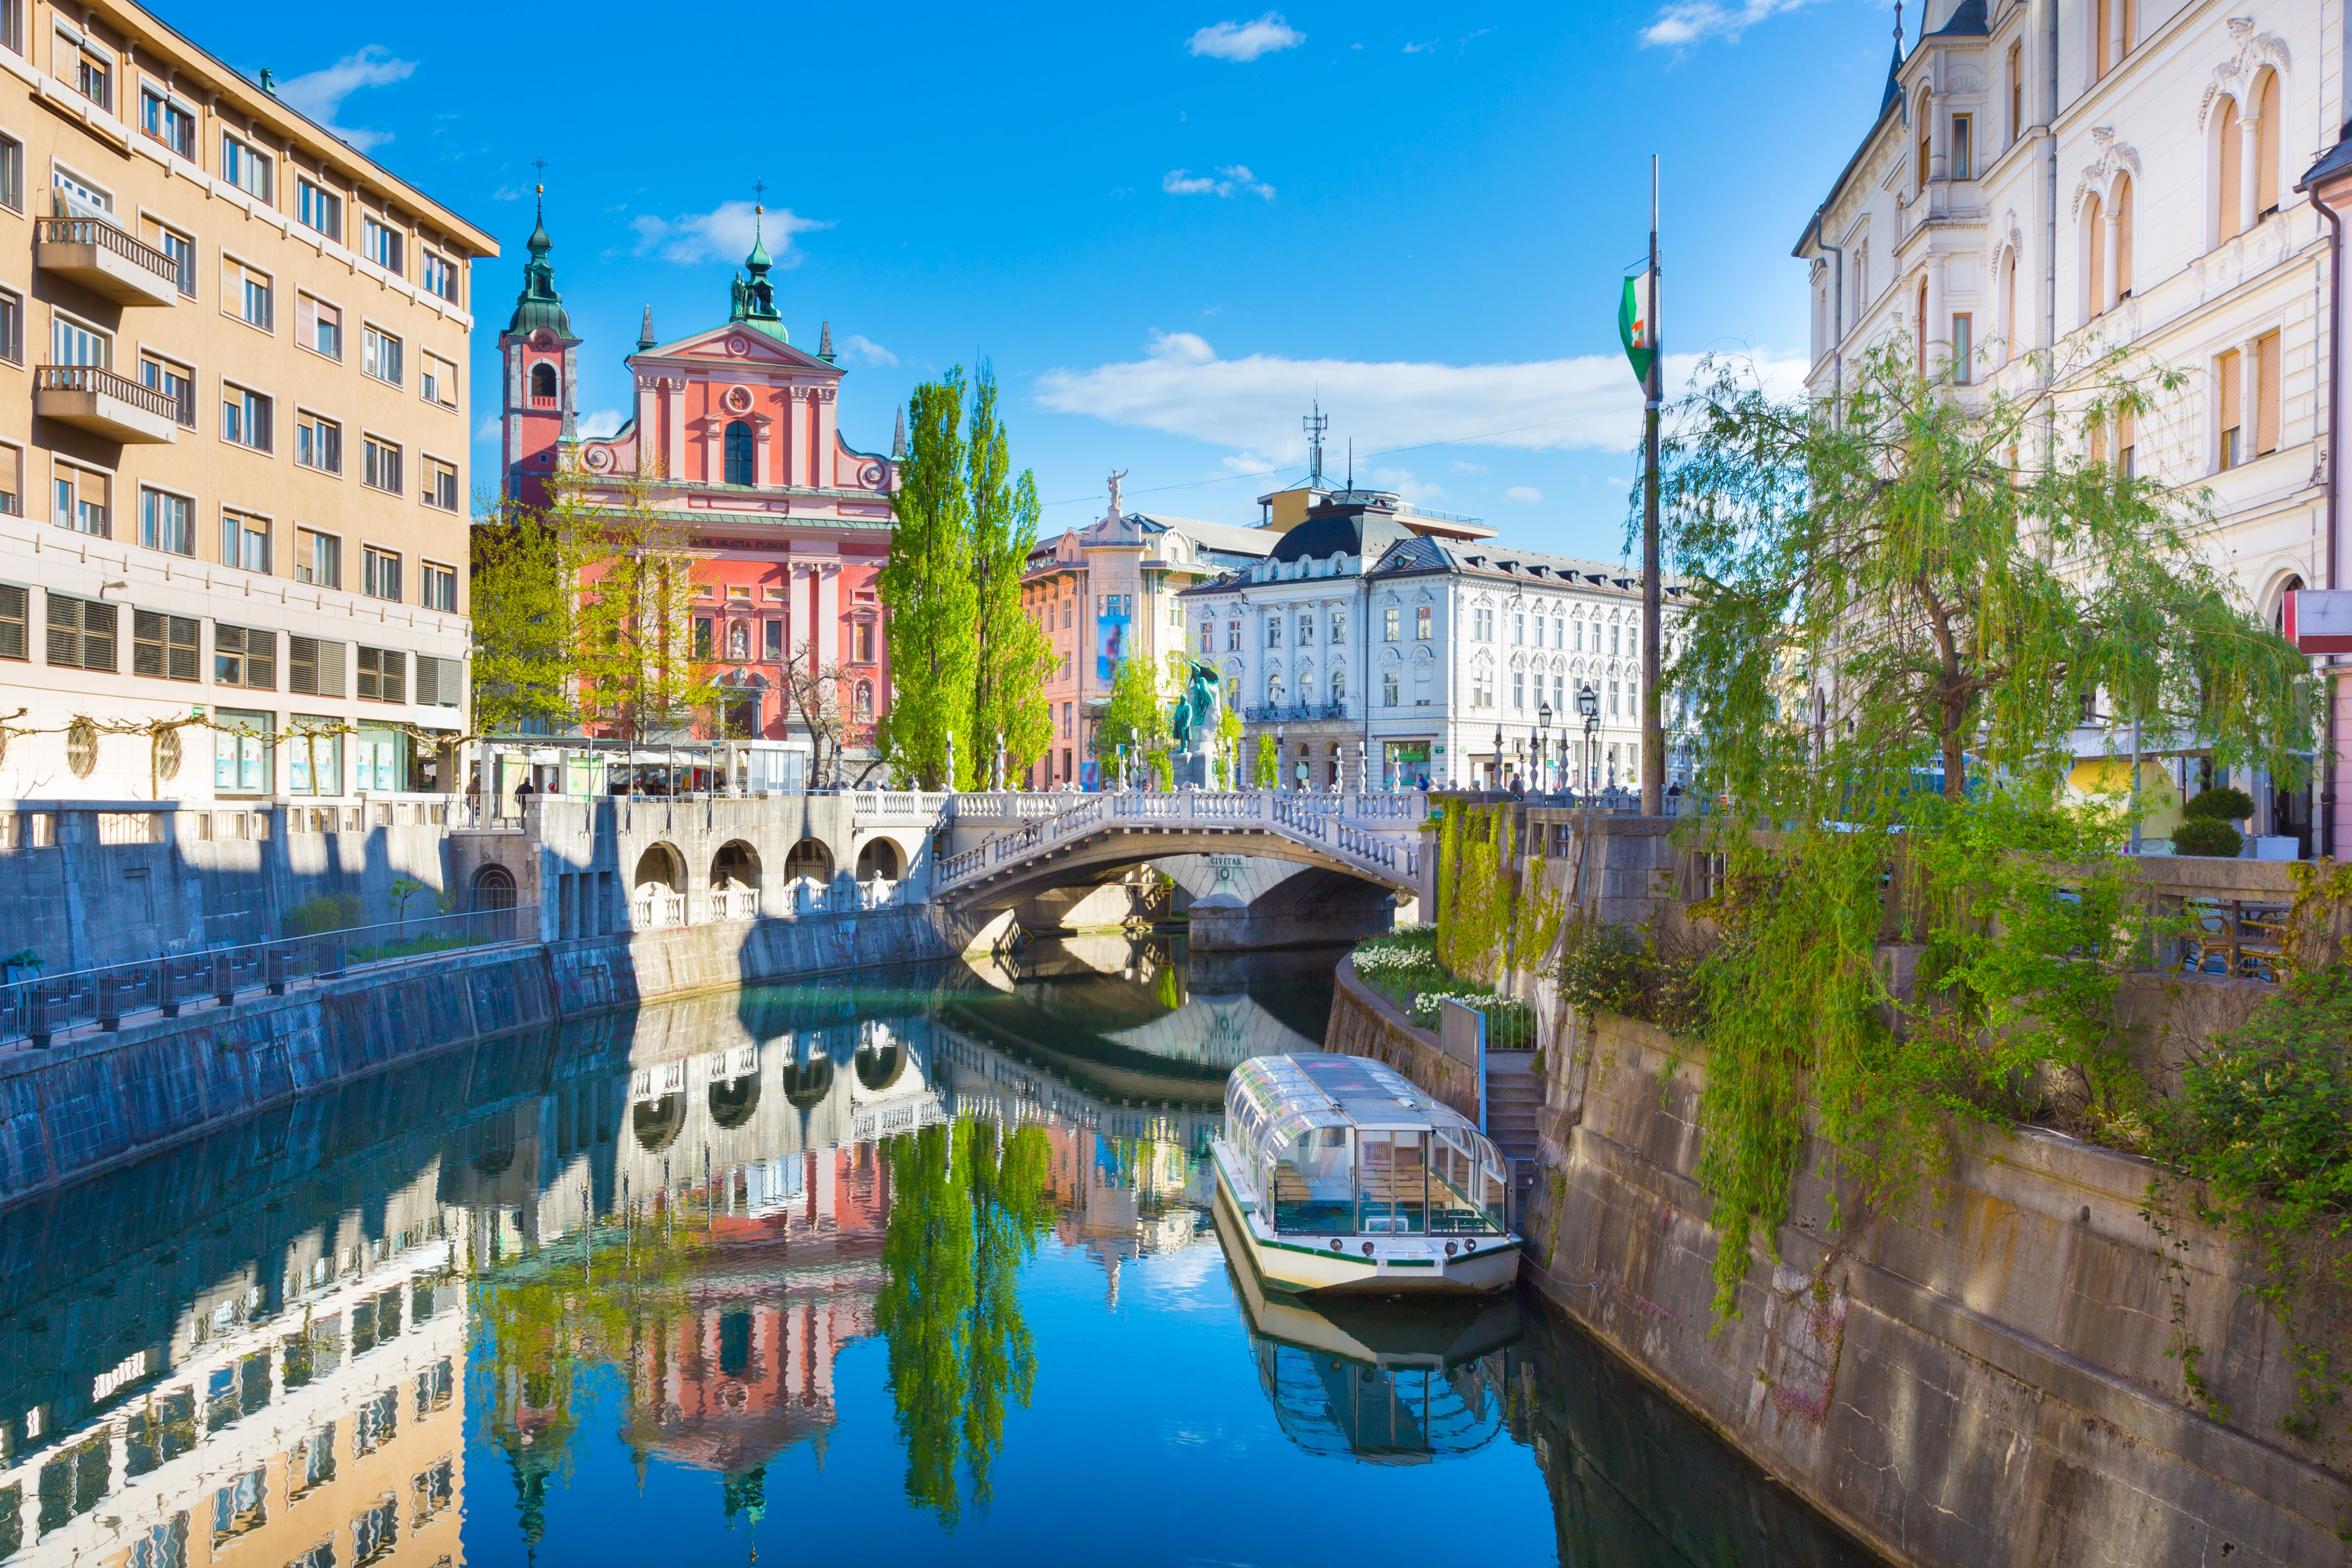 Ljubljana__riverbanks_view__Mostphotos.jpg